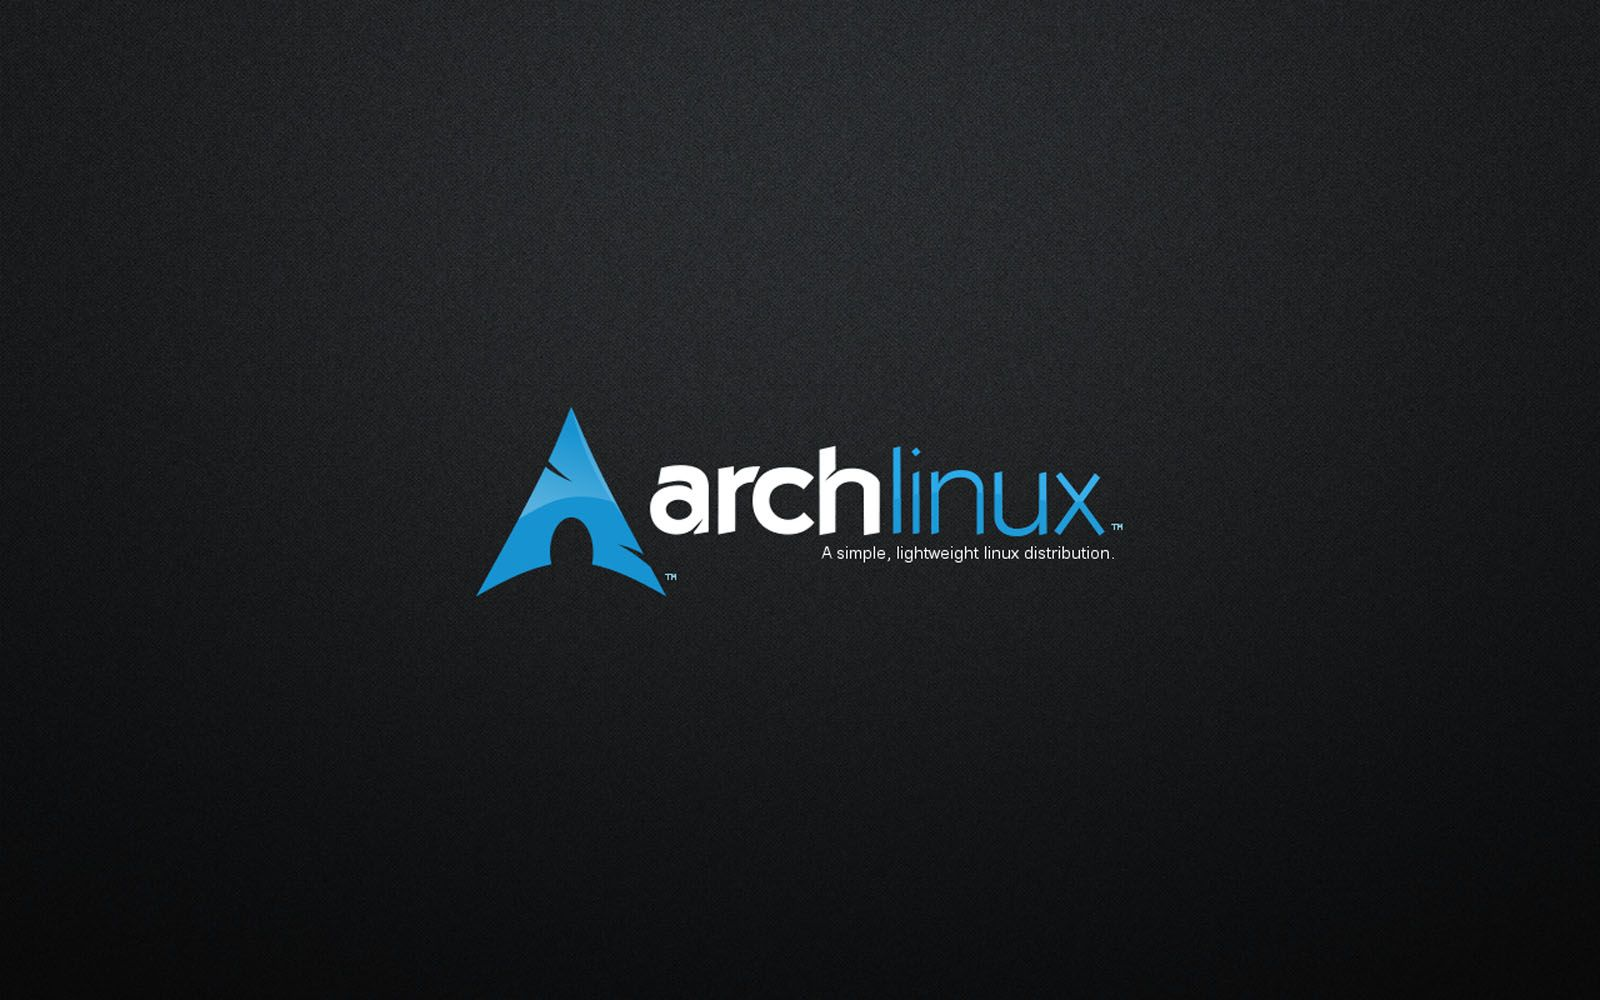 Wallpapers Arch Linux Wallpapers Wallpaper Linux Hd Wallpaper